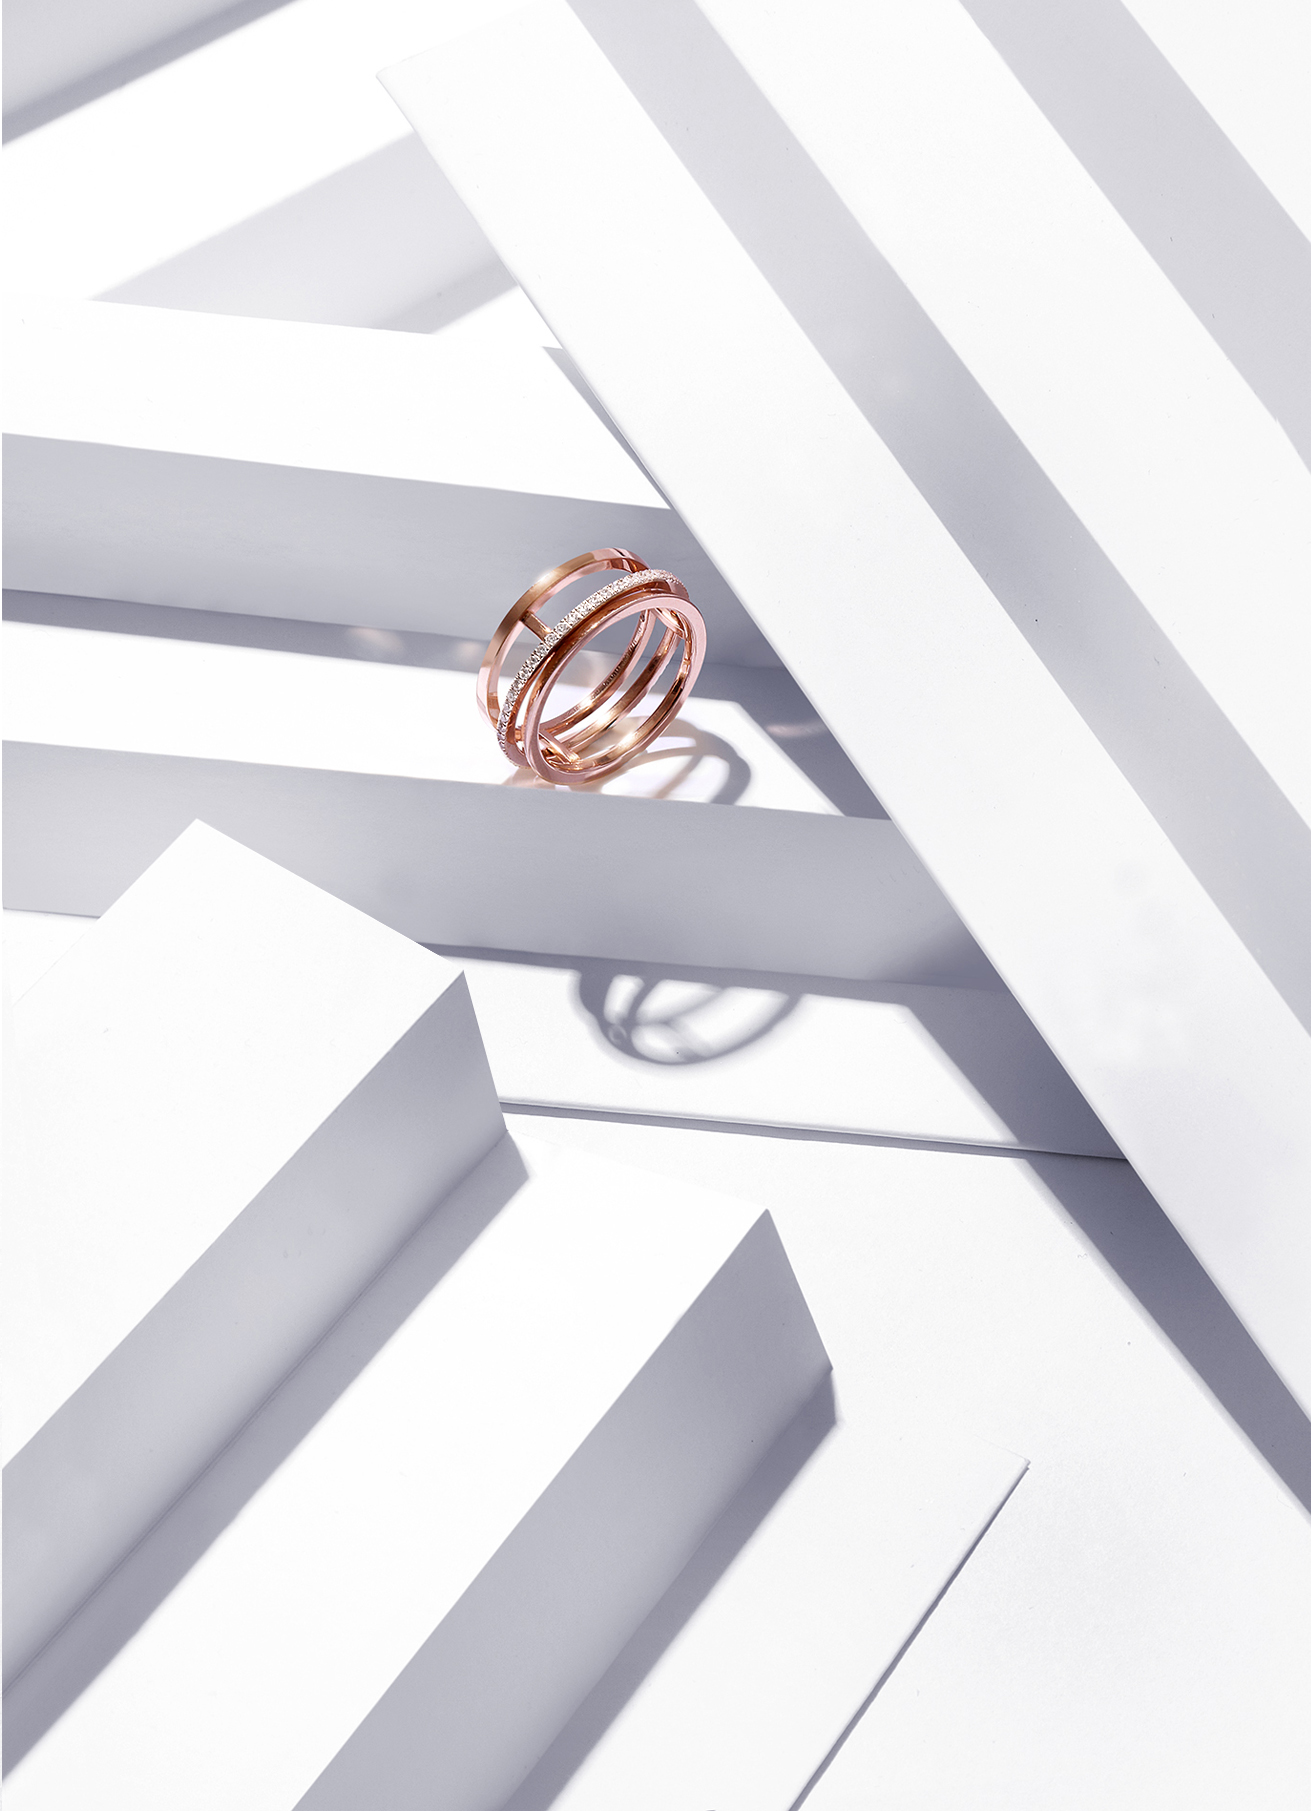 De Beers  Horizon  ring in rose gold and white diamonds. Approx 0.36 carats. £2,850